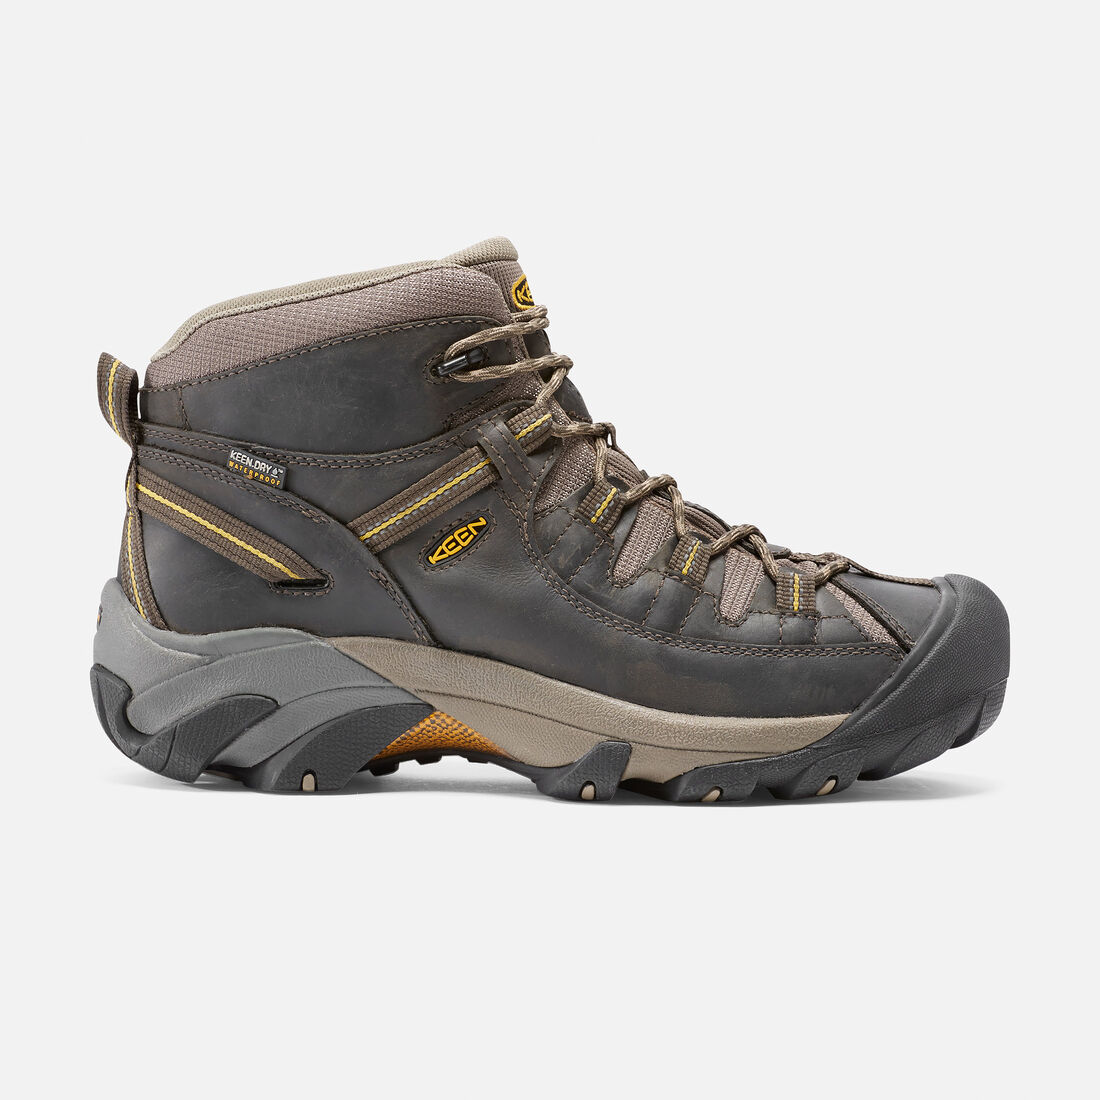 Men's Targhee II Mid in Black Olive/Yellow - large view.